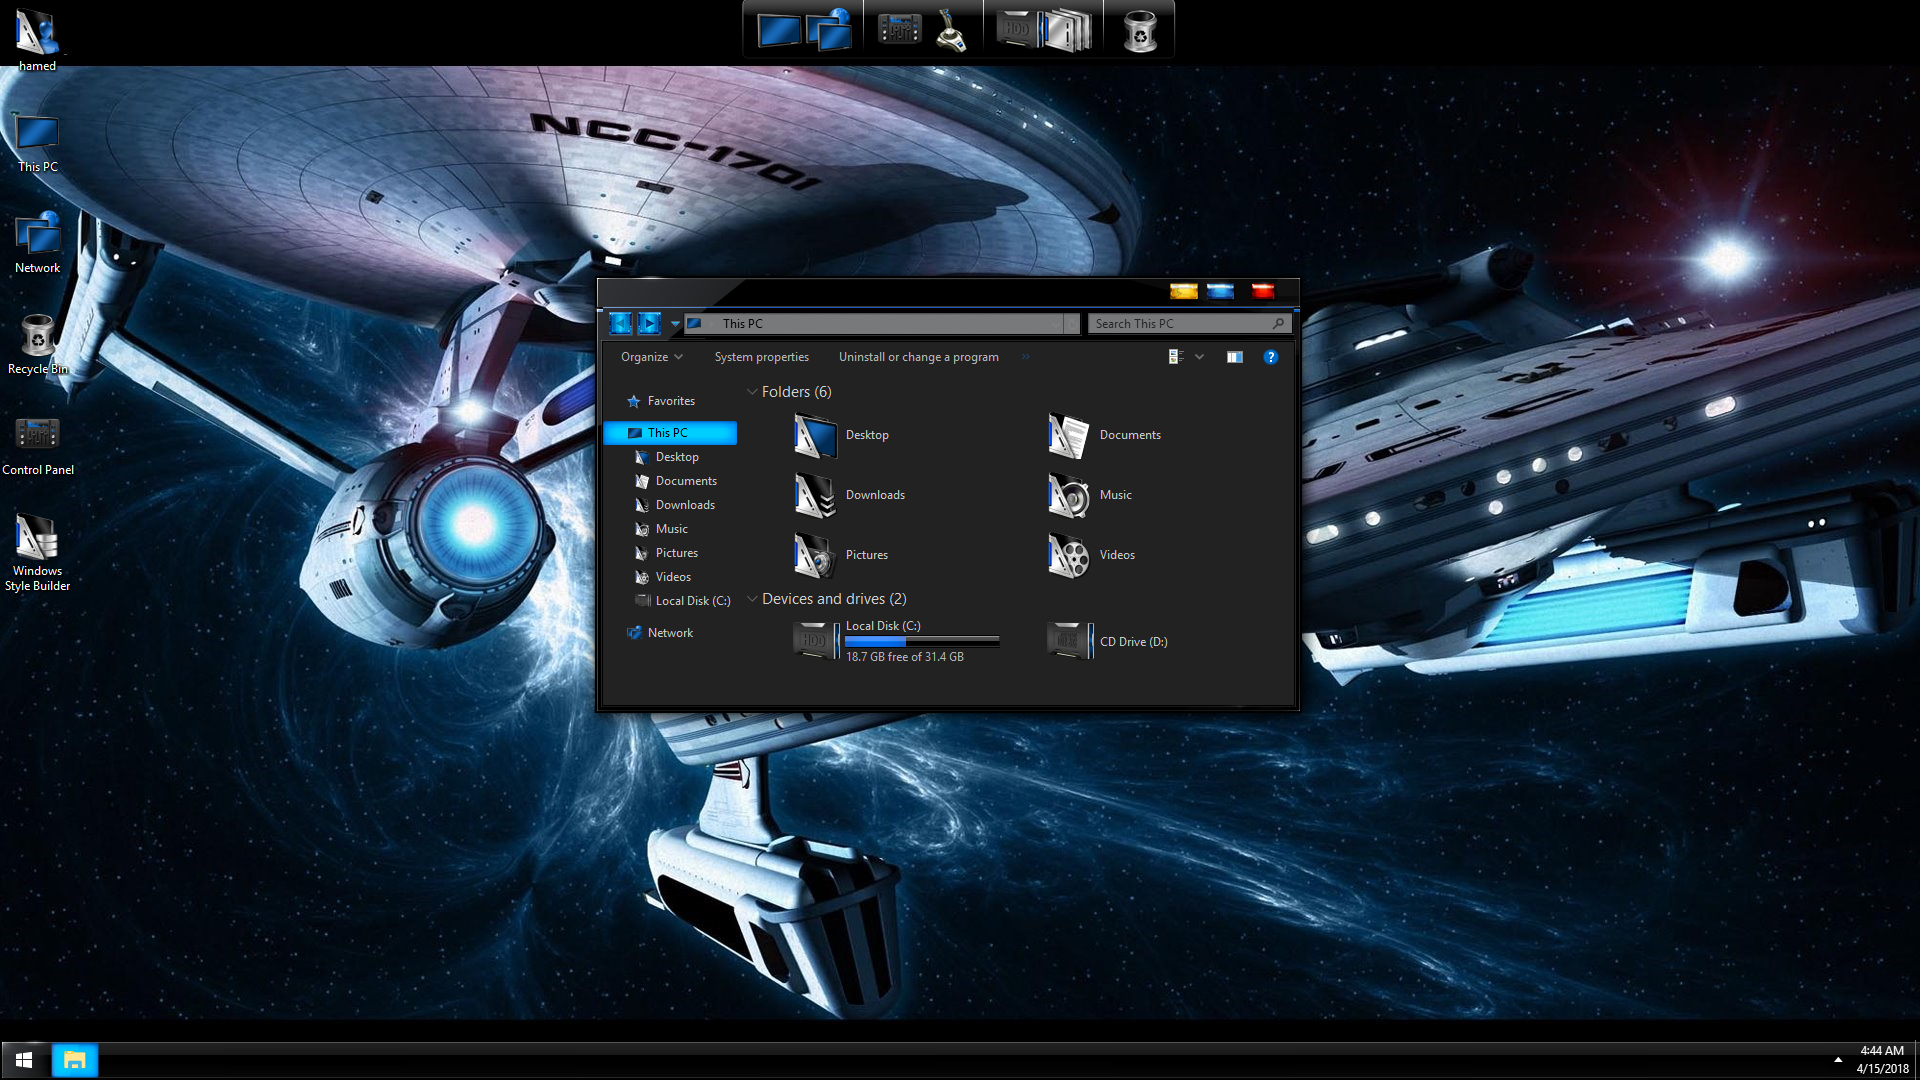 StarTrek Black Blue SkinPack for Windows 7\10